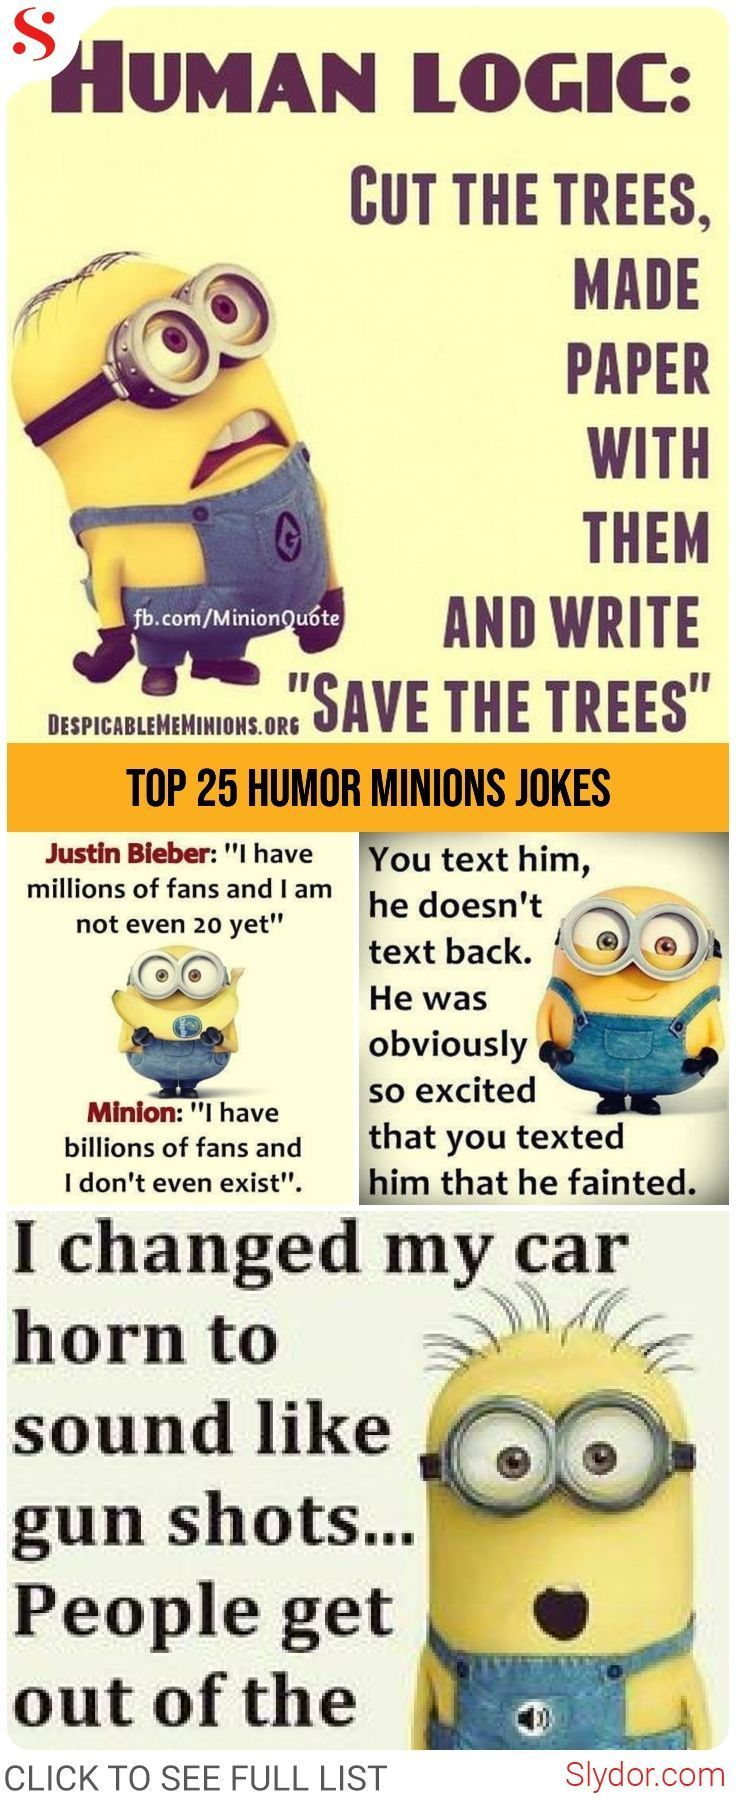 Hilariously Funny Minions Jokes Of All Time Hilarious Funny Memes Minion Jokes Slydor Funnymemes Minion Jokes Minions Funny Funny Minion Memes